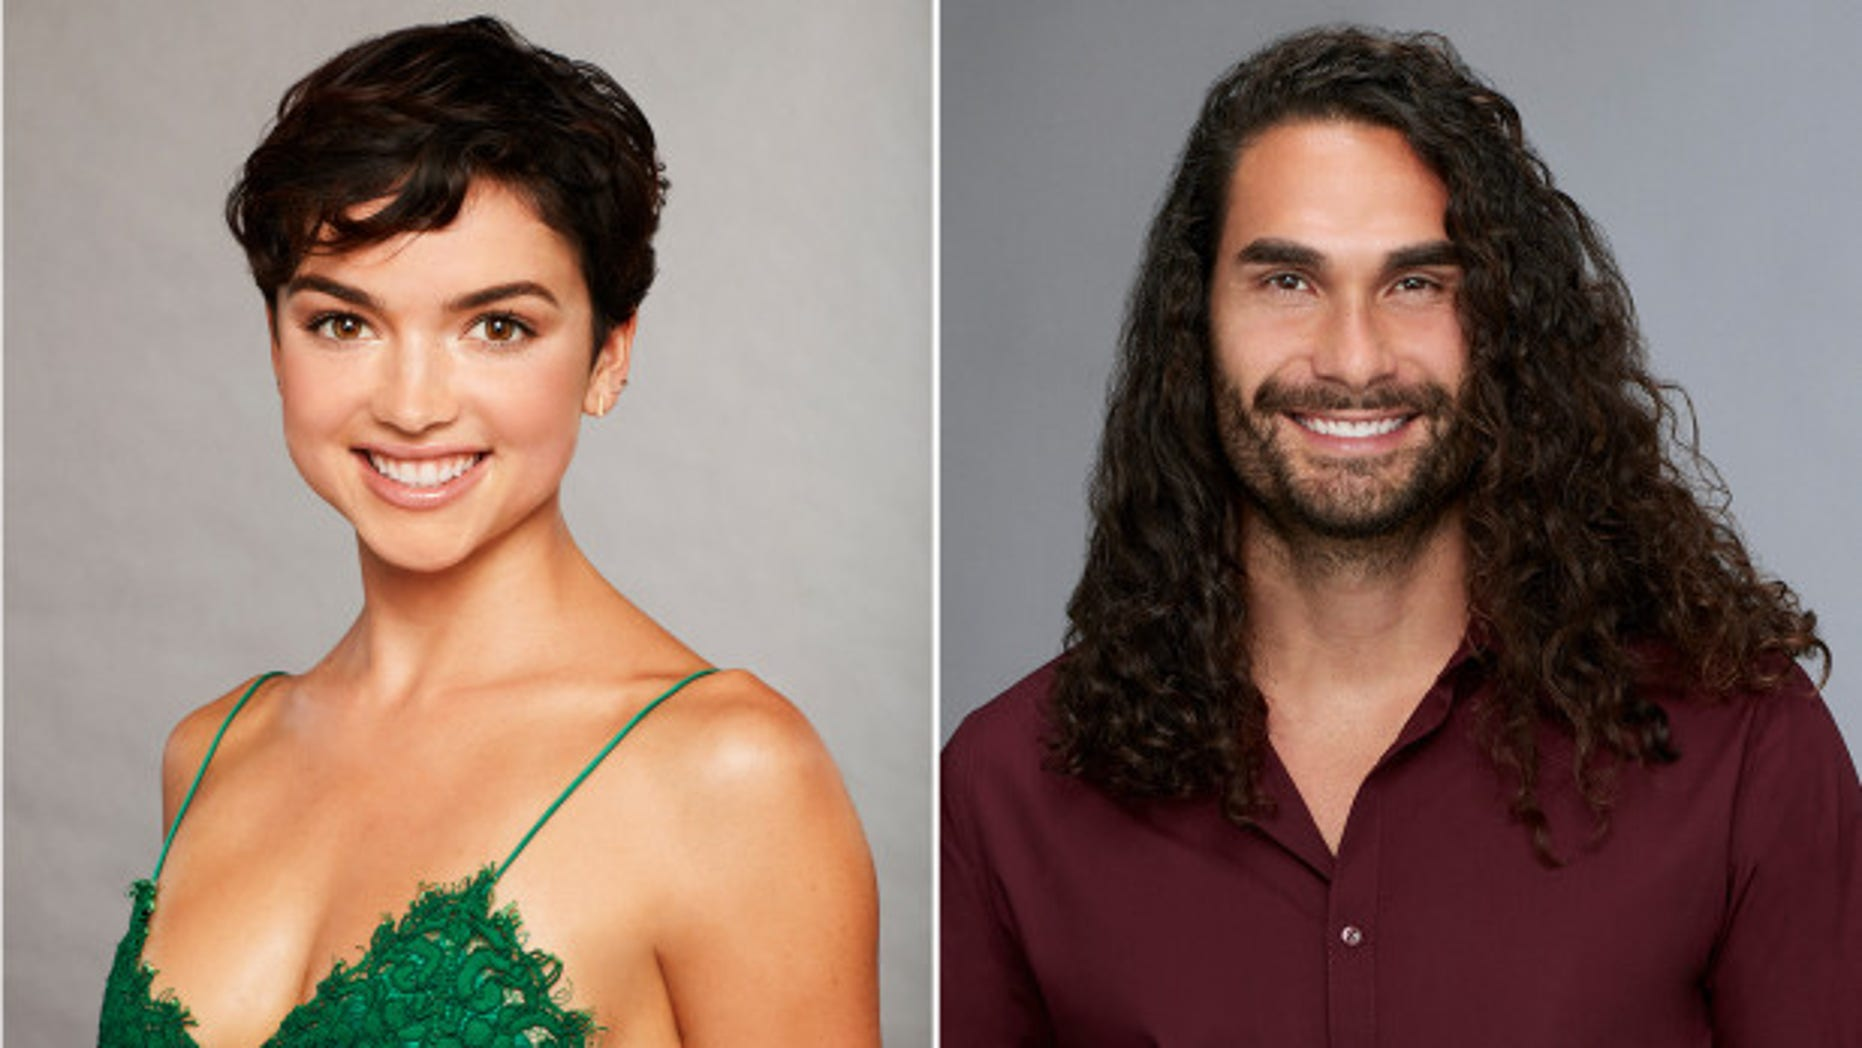 """Bachelor"" franchise stars Bekah Martinez and Leo Dattavio are battling it out on social media after the 23-year-old reality star accused the stuntman of sexual harassment."